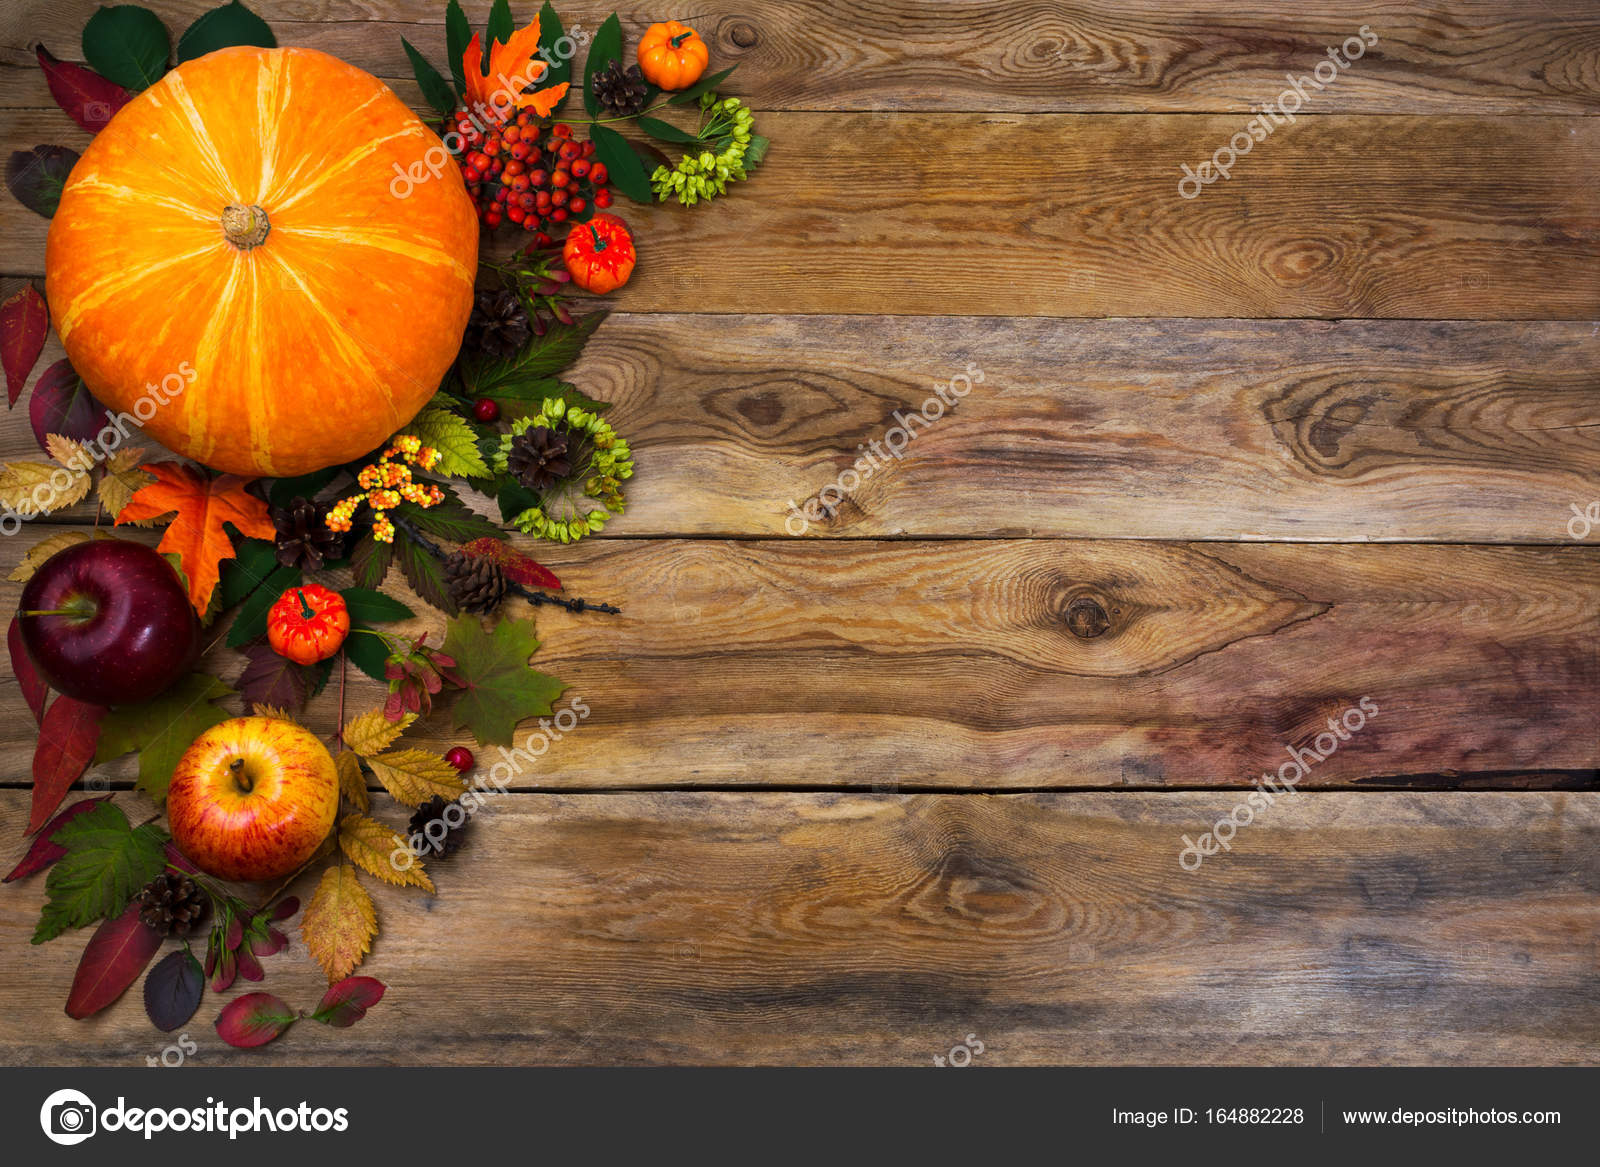 Happy Thanksgiving Decor With Pumpkin Apples And Autumn Leaves On The Left Side Of Rustic Wooden Table Fall Background Seasonal Vegetables Fruits